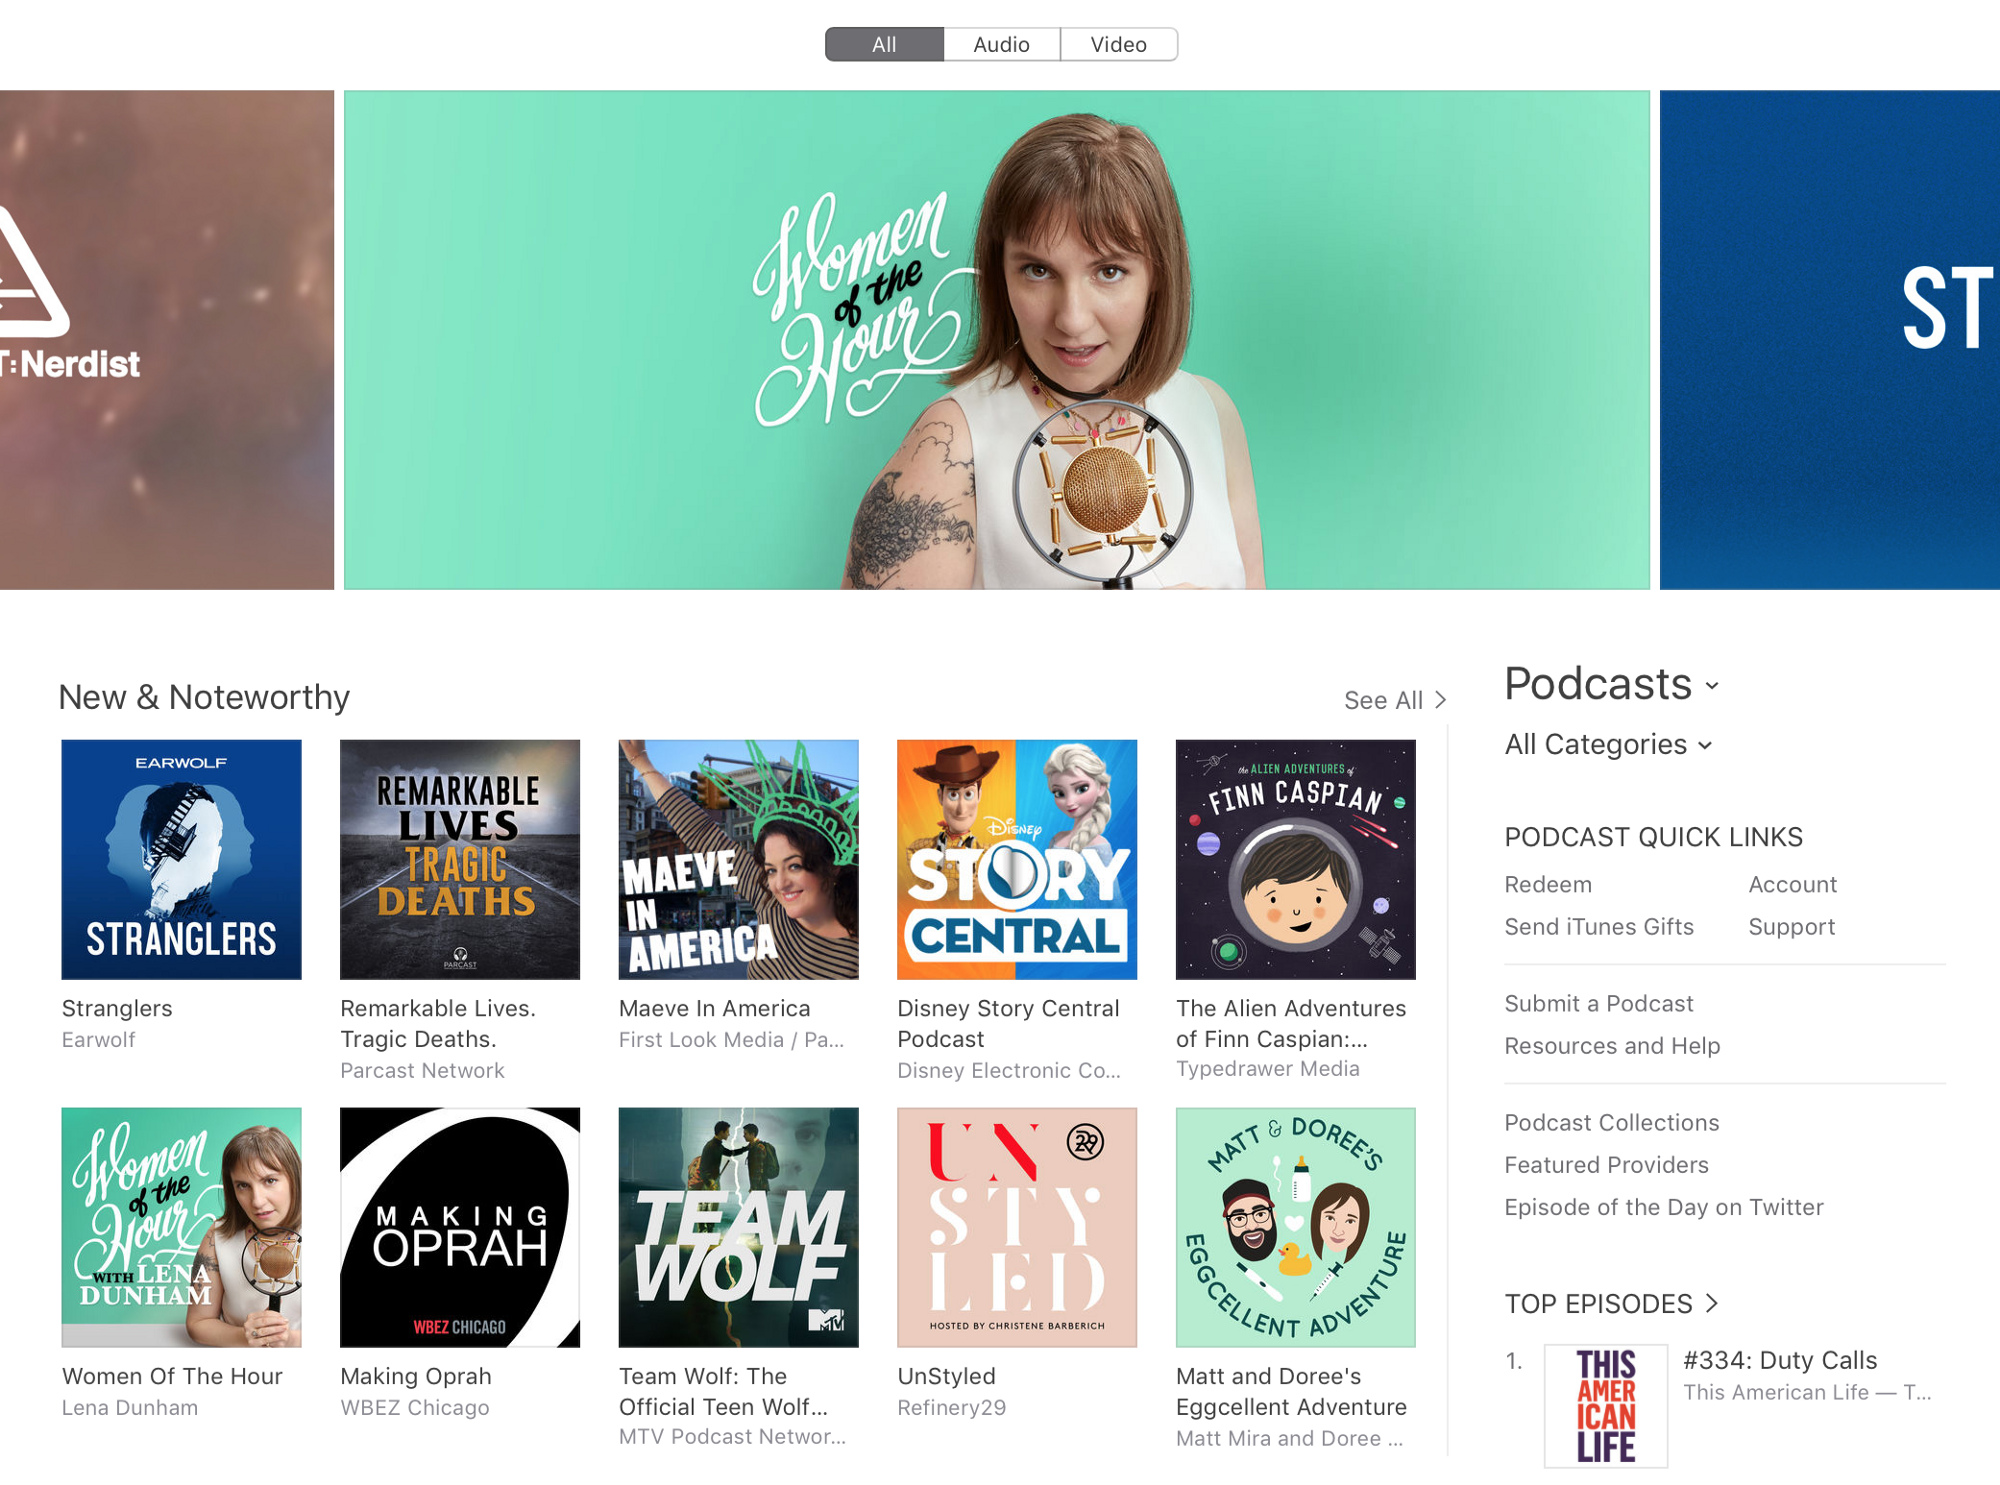 Get Notifications for Podcast Reviews Free – Mission and Values